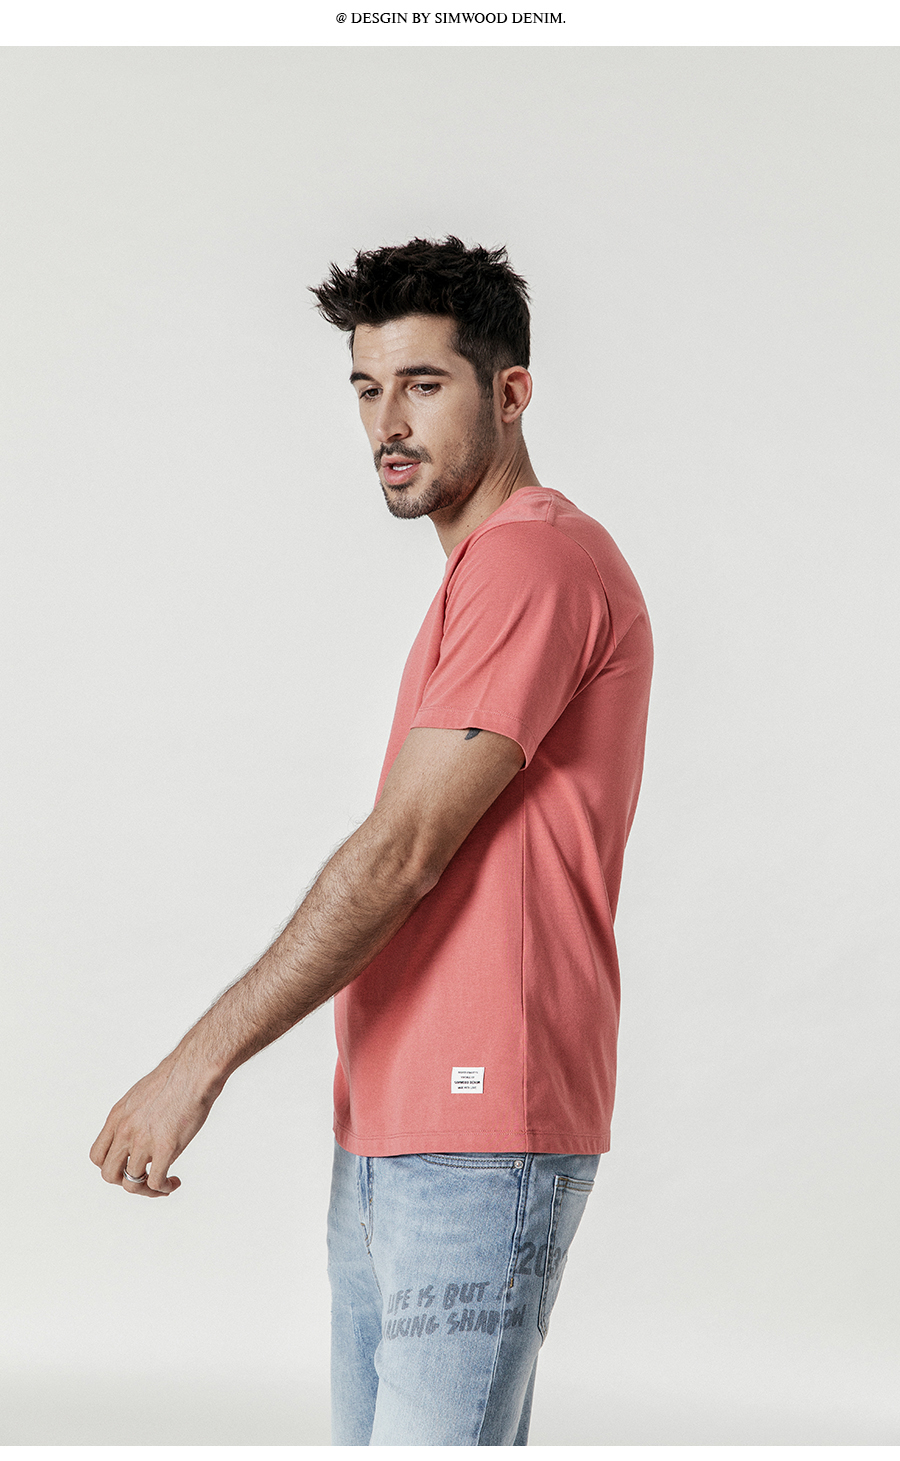 SIMWOOD 19 Summer New T-Shirt Men 100% Cotton Solid Color Casual t shirt Basics O-neck High Quality Plus Size Male Tee 190004 22